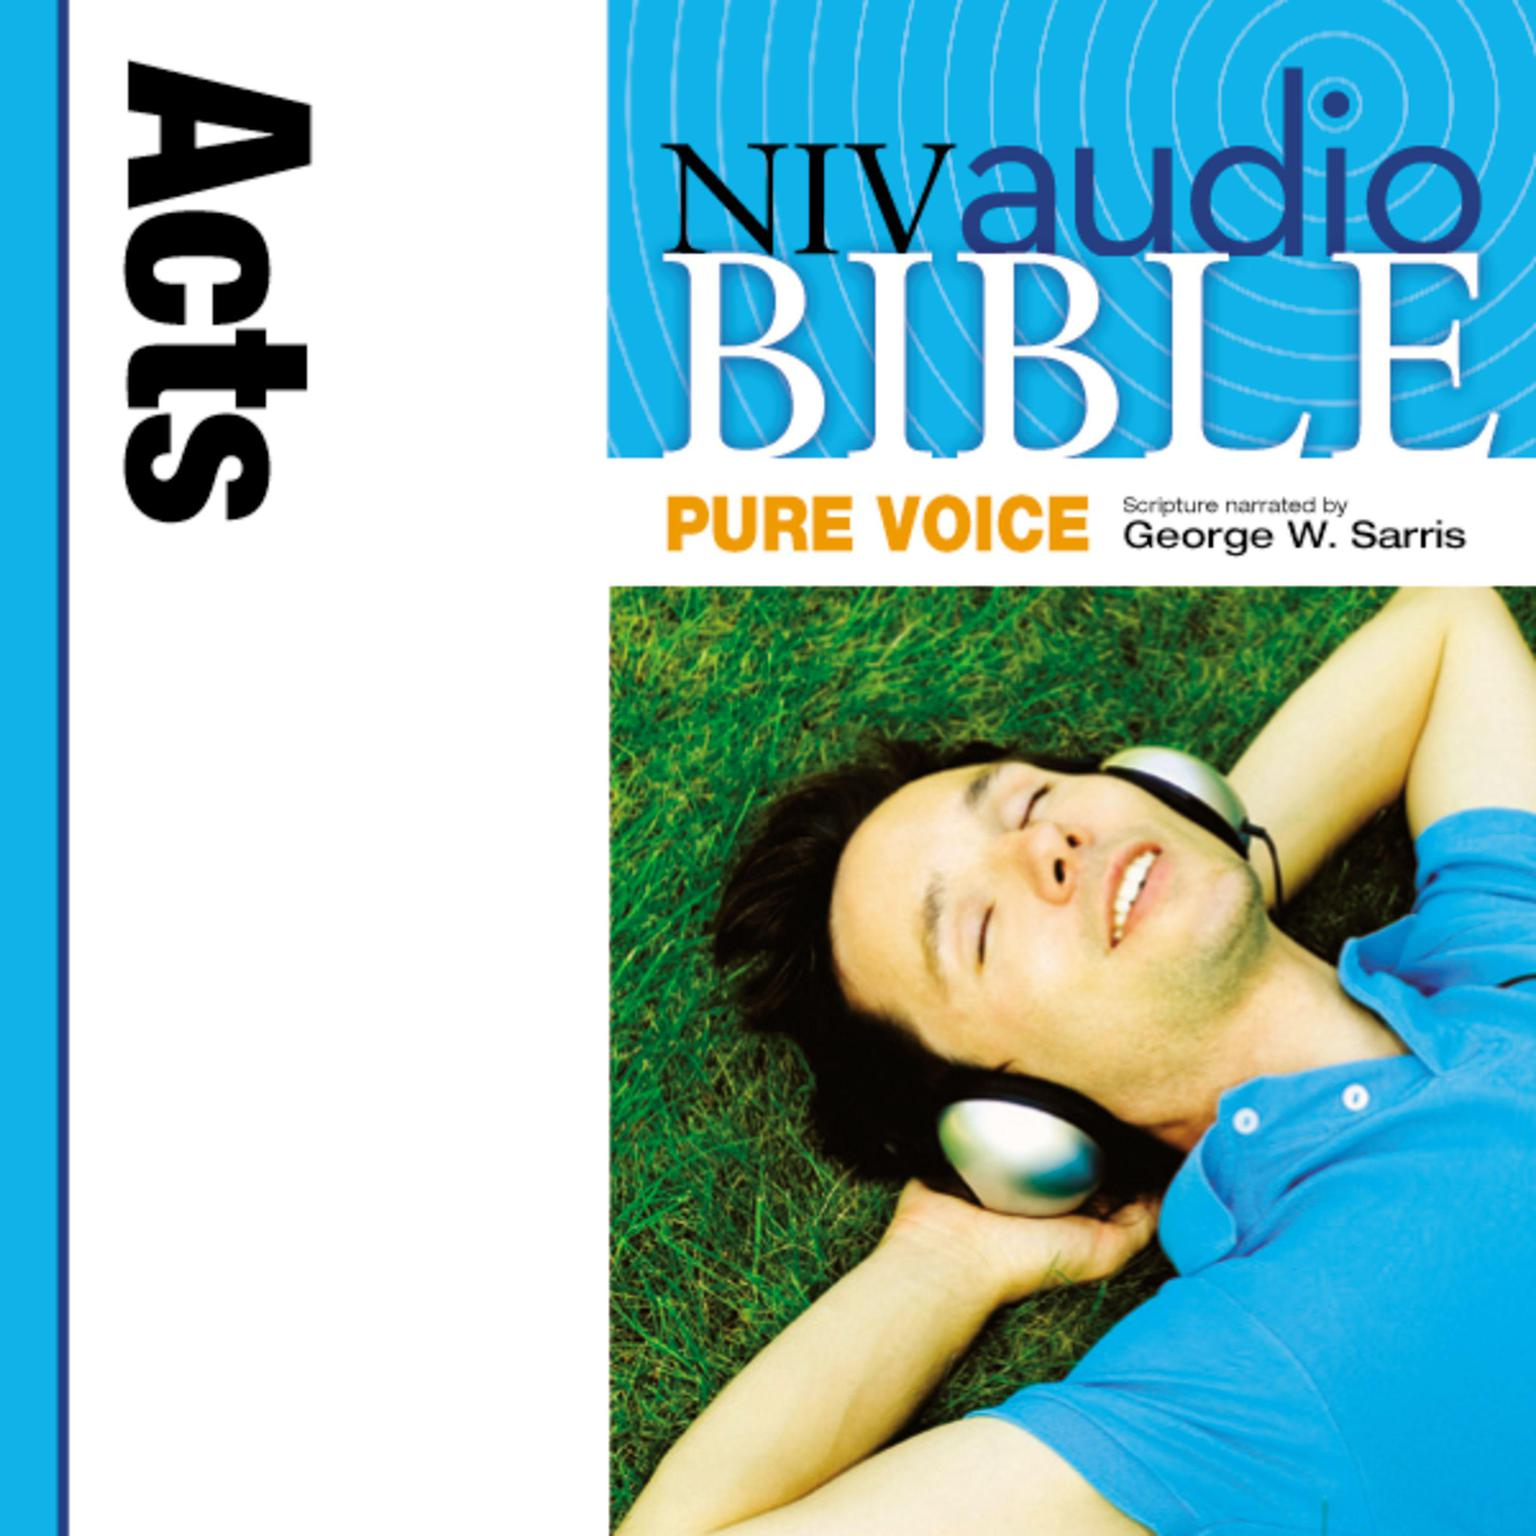 Printable NIV, Audio Bible, Pure Voice: Acts, Audio Download (Narrated by George W. Sarris) Audiobook Cover Art